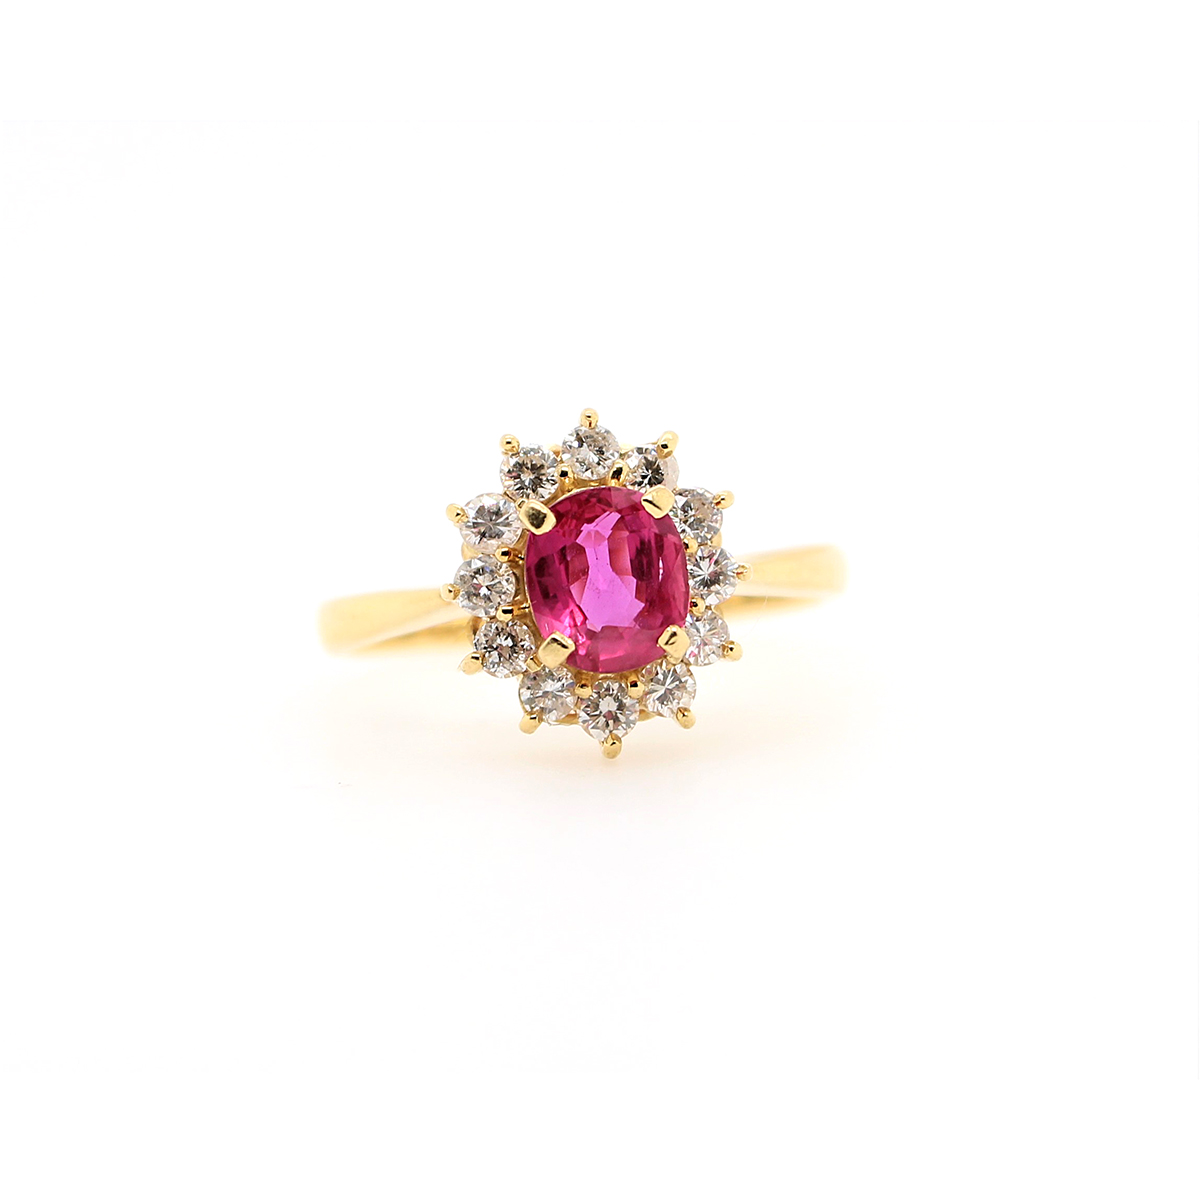 Vintage 18 Karat Yellow Gold Oval Ruby and Diamond Ring